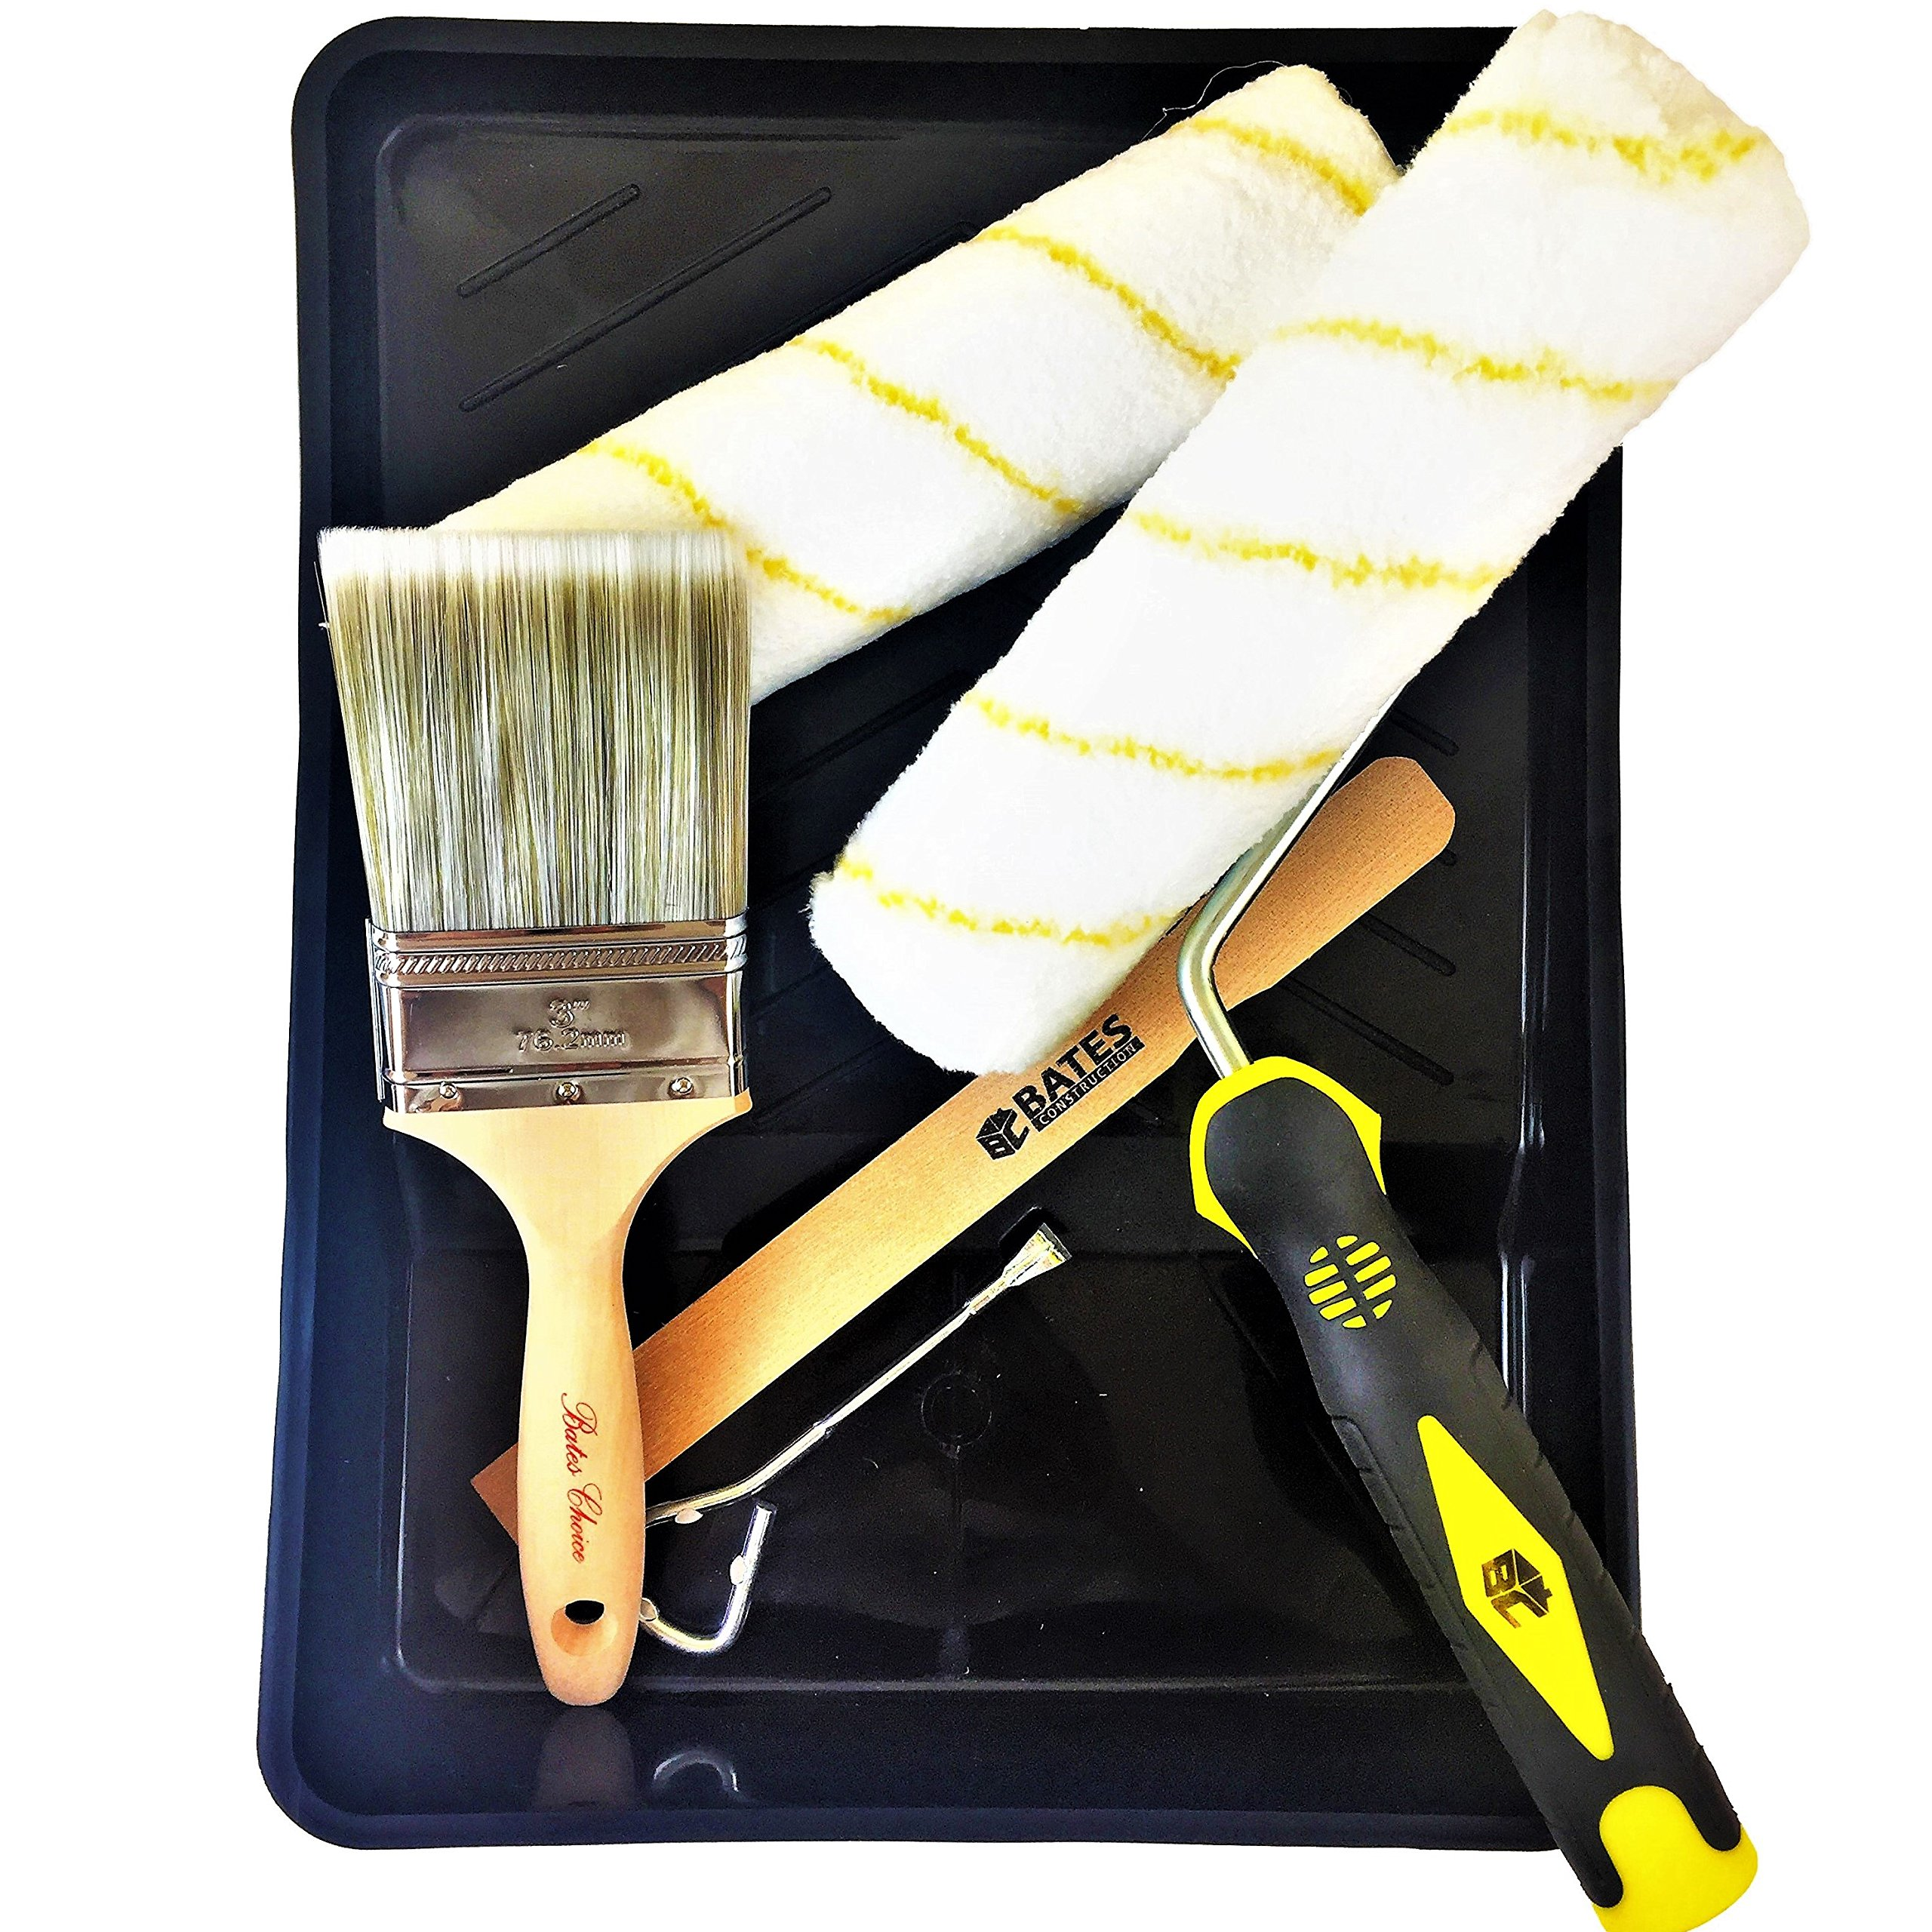 Buy Bates - Paint Roller, Paint Brush, Paint Tray, Roller